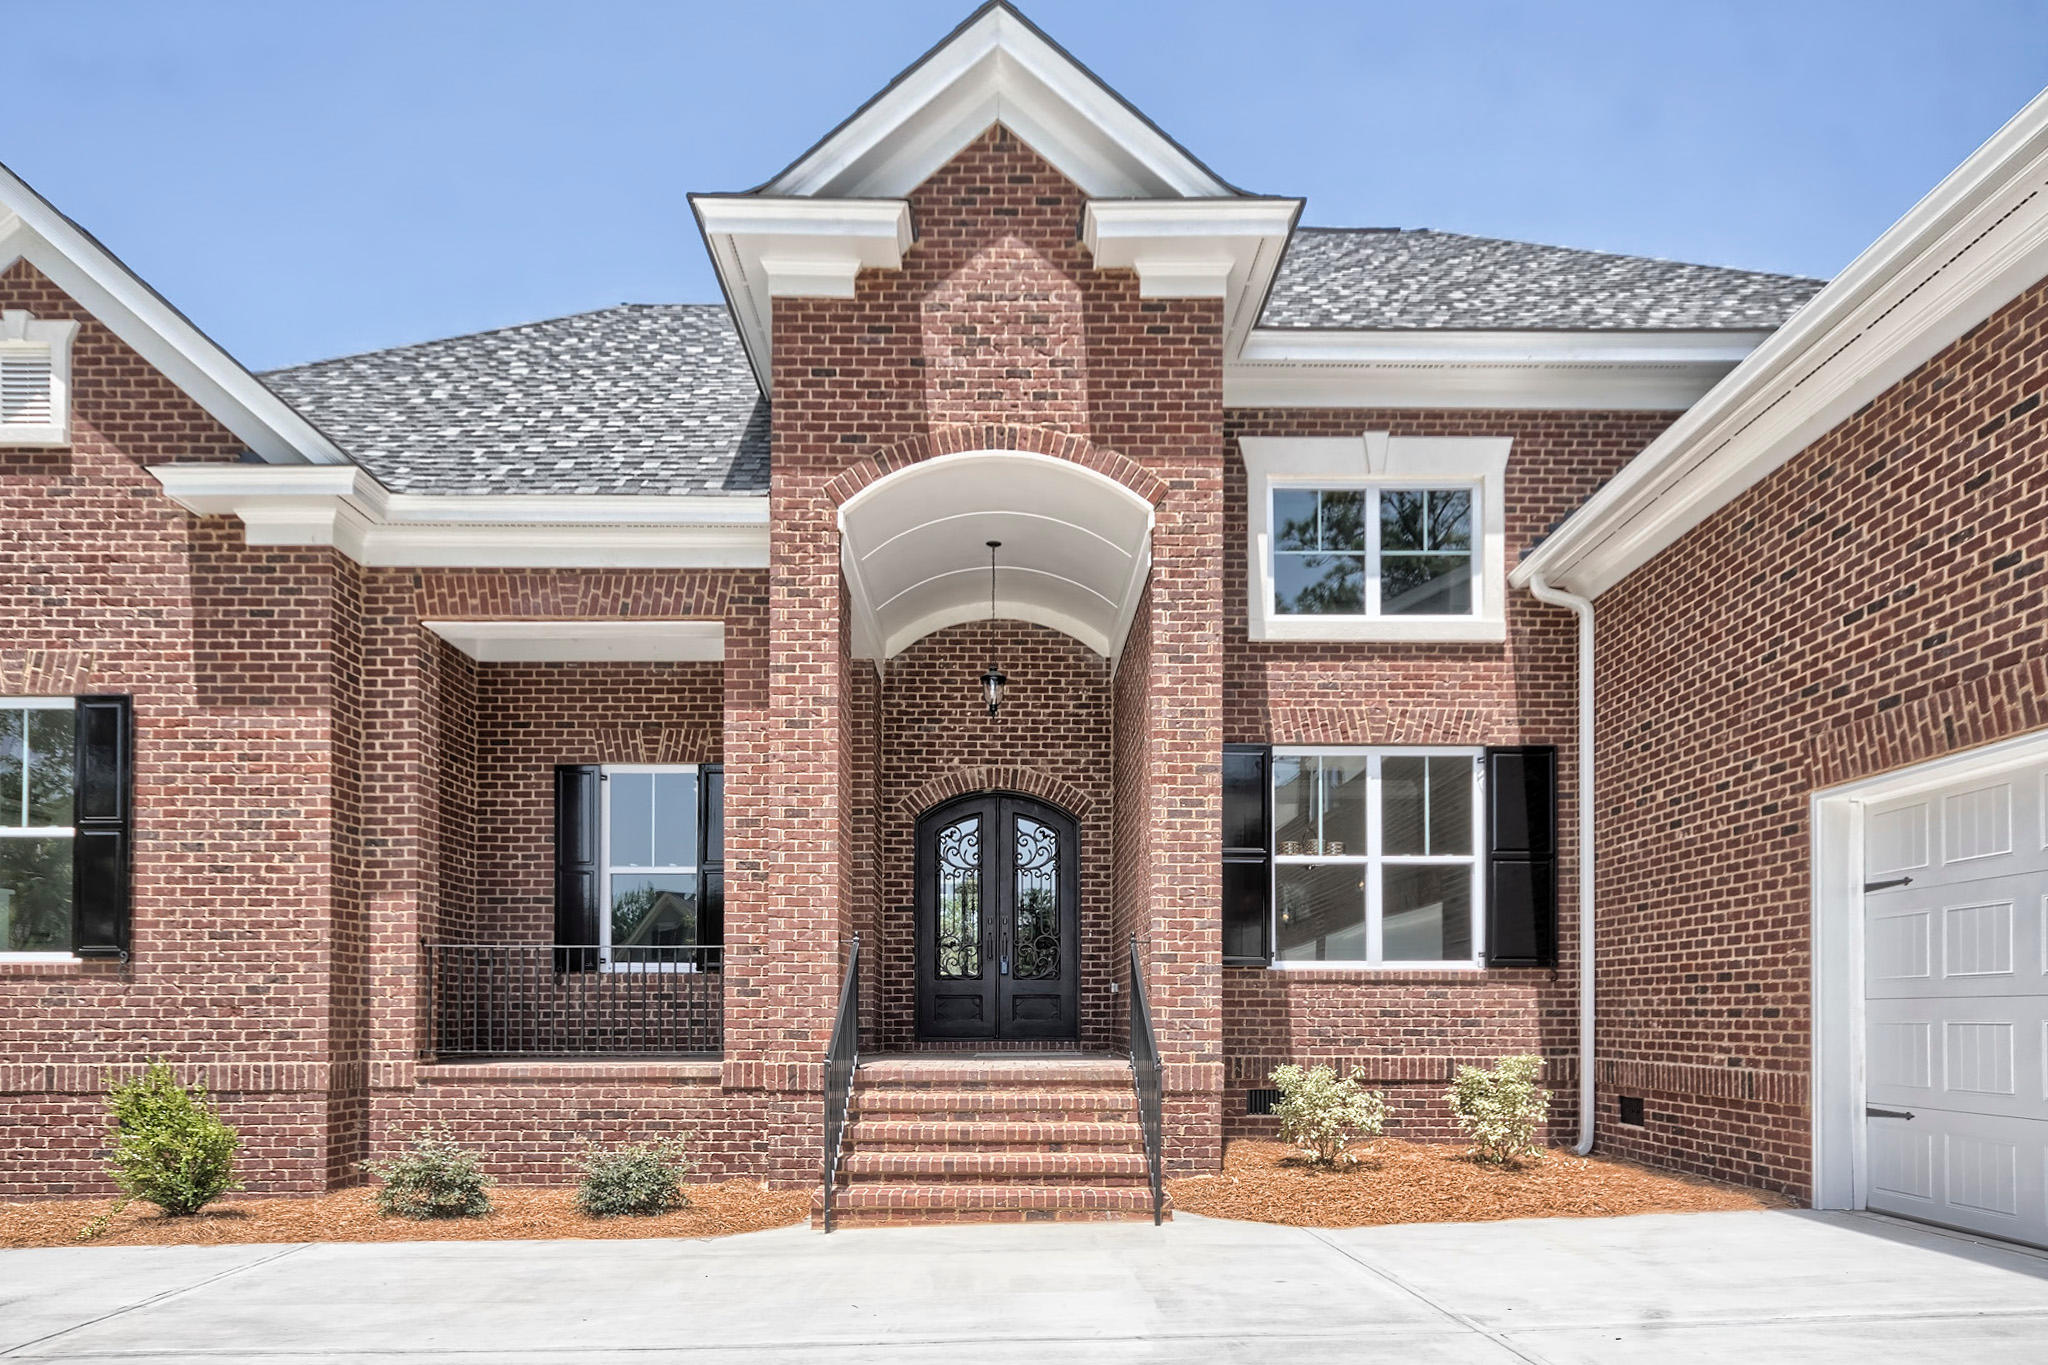 Woodcreek Farms Luxury Homes Executive Construction Homes image 17